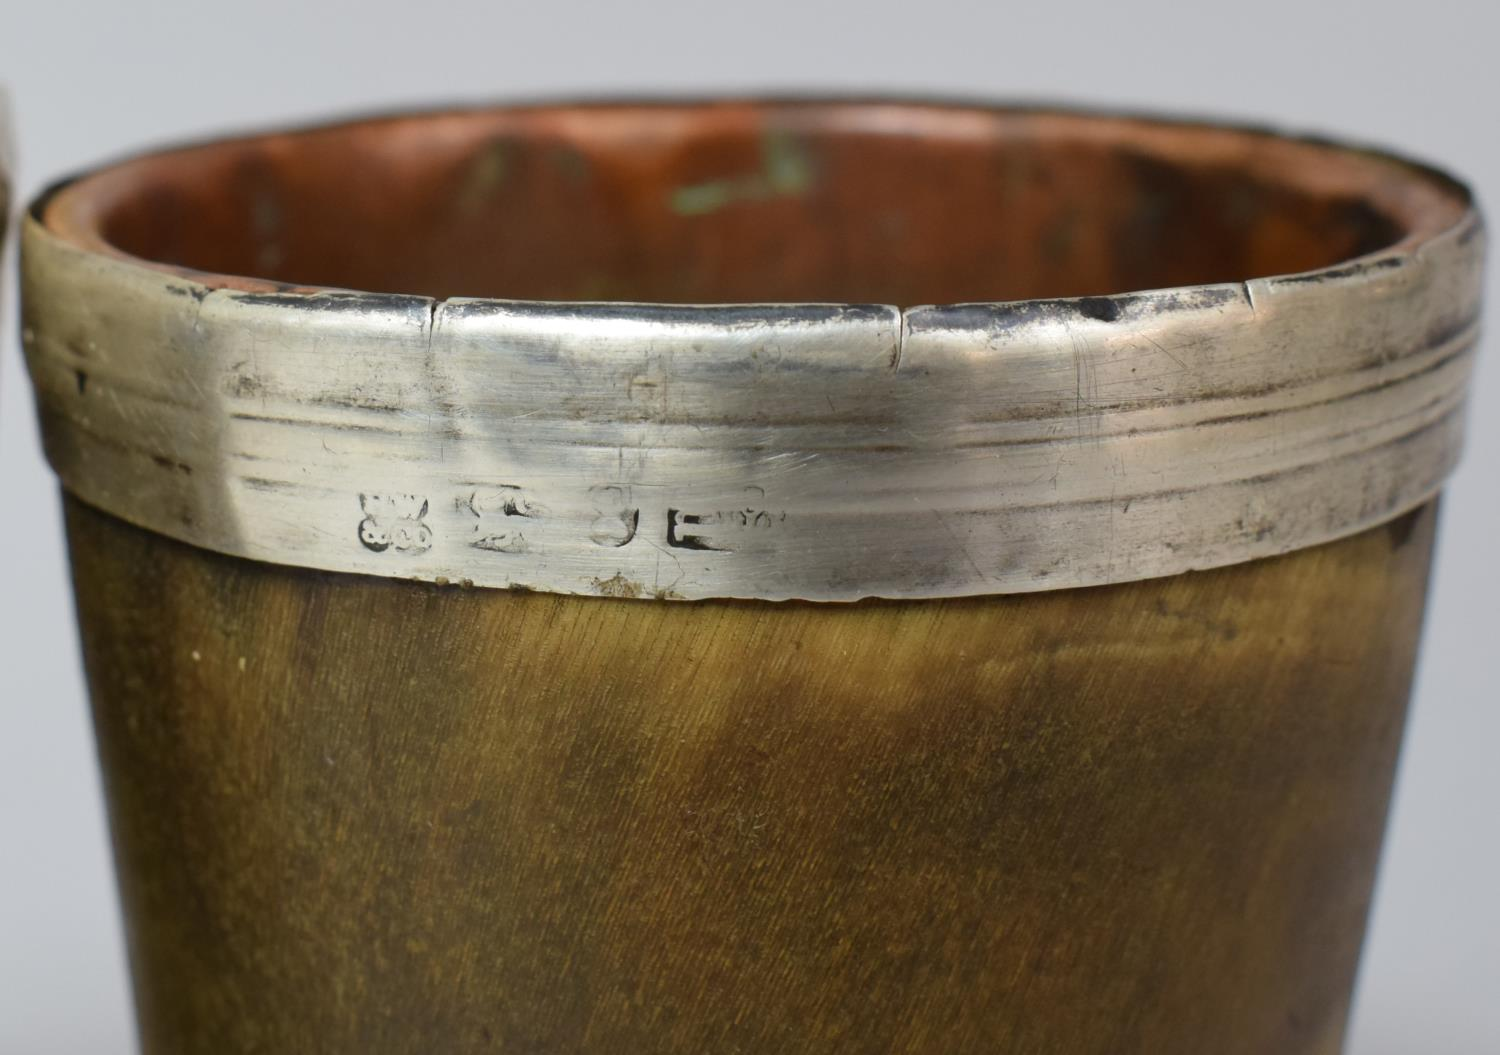 A Pair of 19th Century Silver Rimmed Scottish Horn Beakers with Original Tinned Copper Liners and - Image 3 of 5